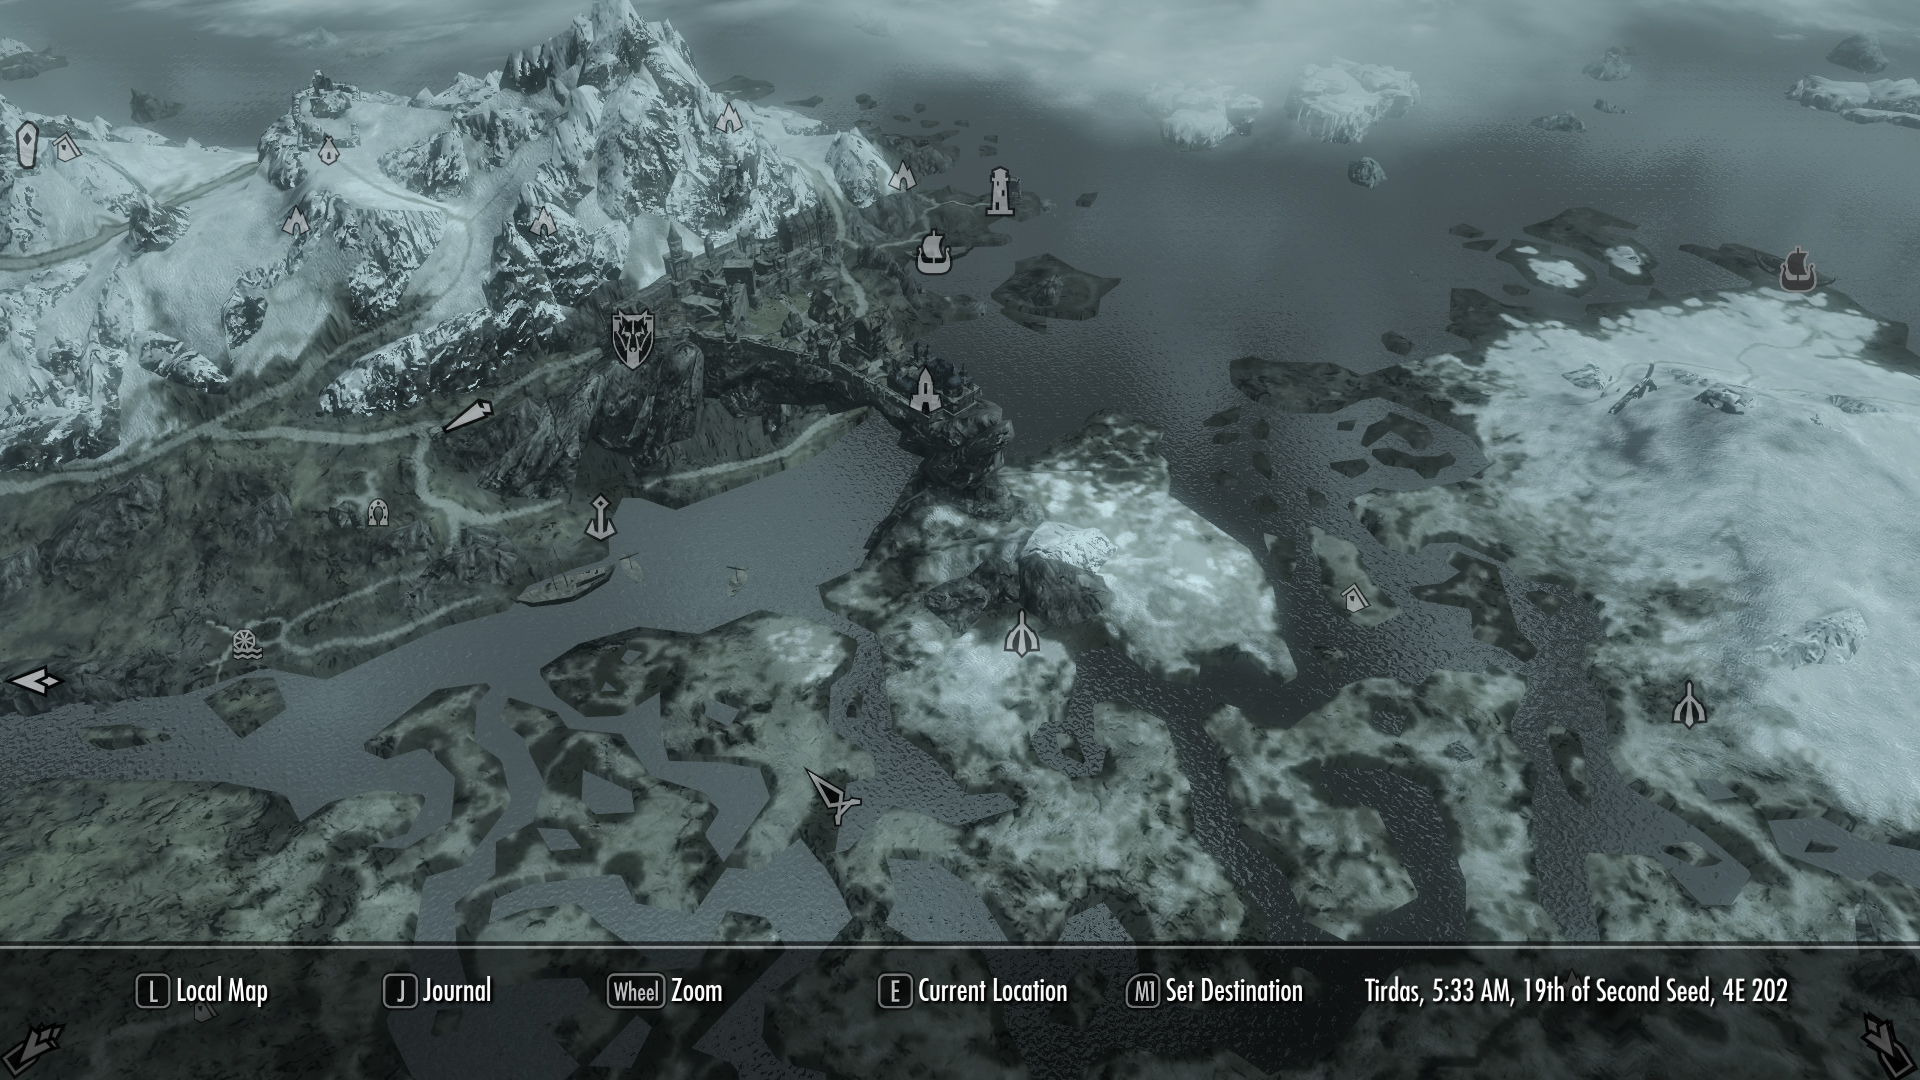 skyrim solitude map with High Quality World Map W Roads Screenshot01 on The Steed Stone  Skyrim moreover Any additionally The Geology Of Skyrim furthermore Skyrim Hold Symbols Winterhold 669876017 as well Work In Progress1.